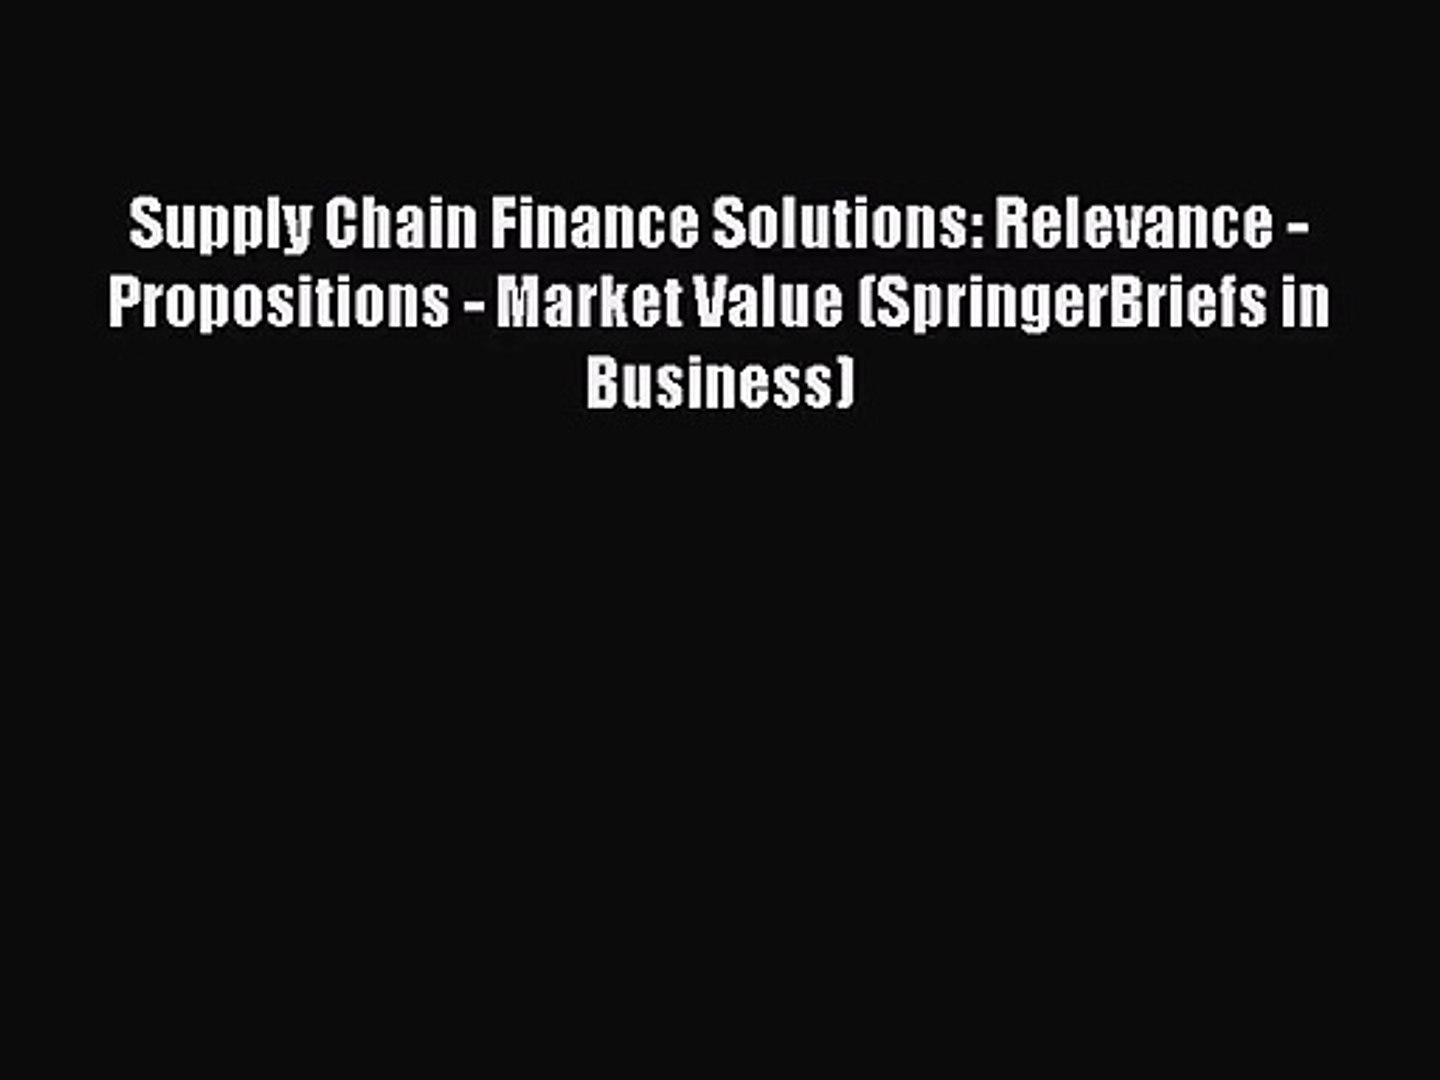 Supply Chain Finance Solutions: Relevance - Propositions - Market Value (SpringerBriefs in Business)